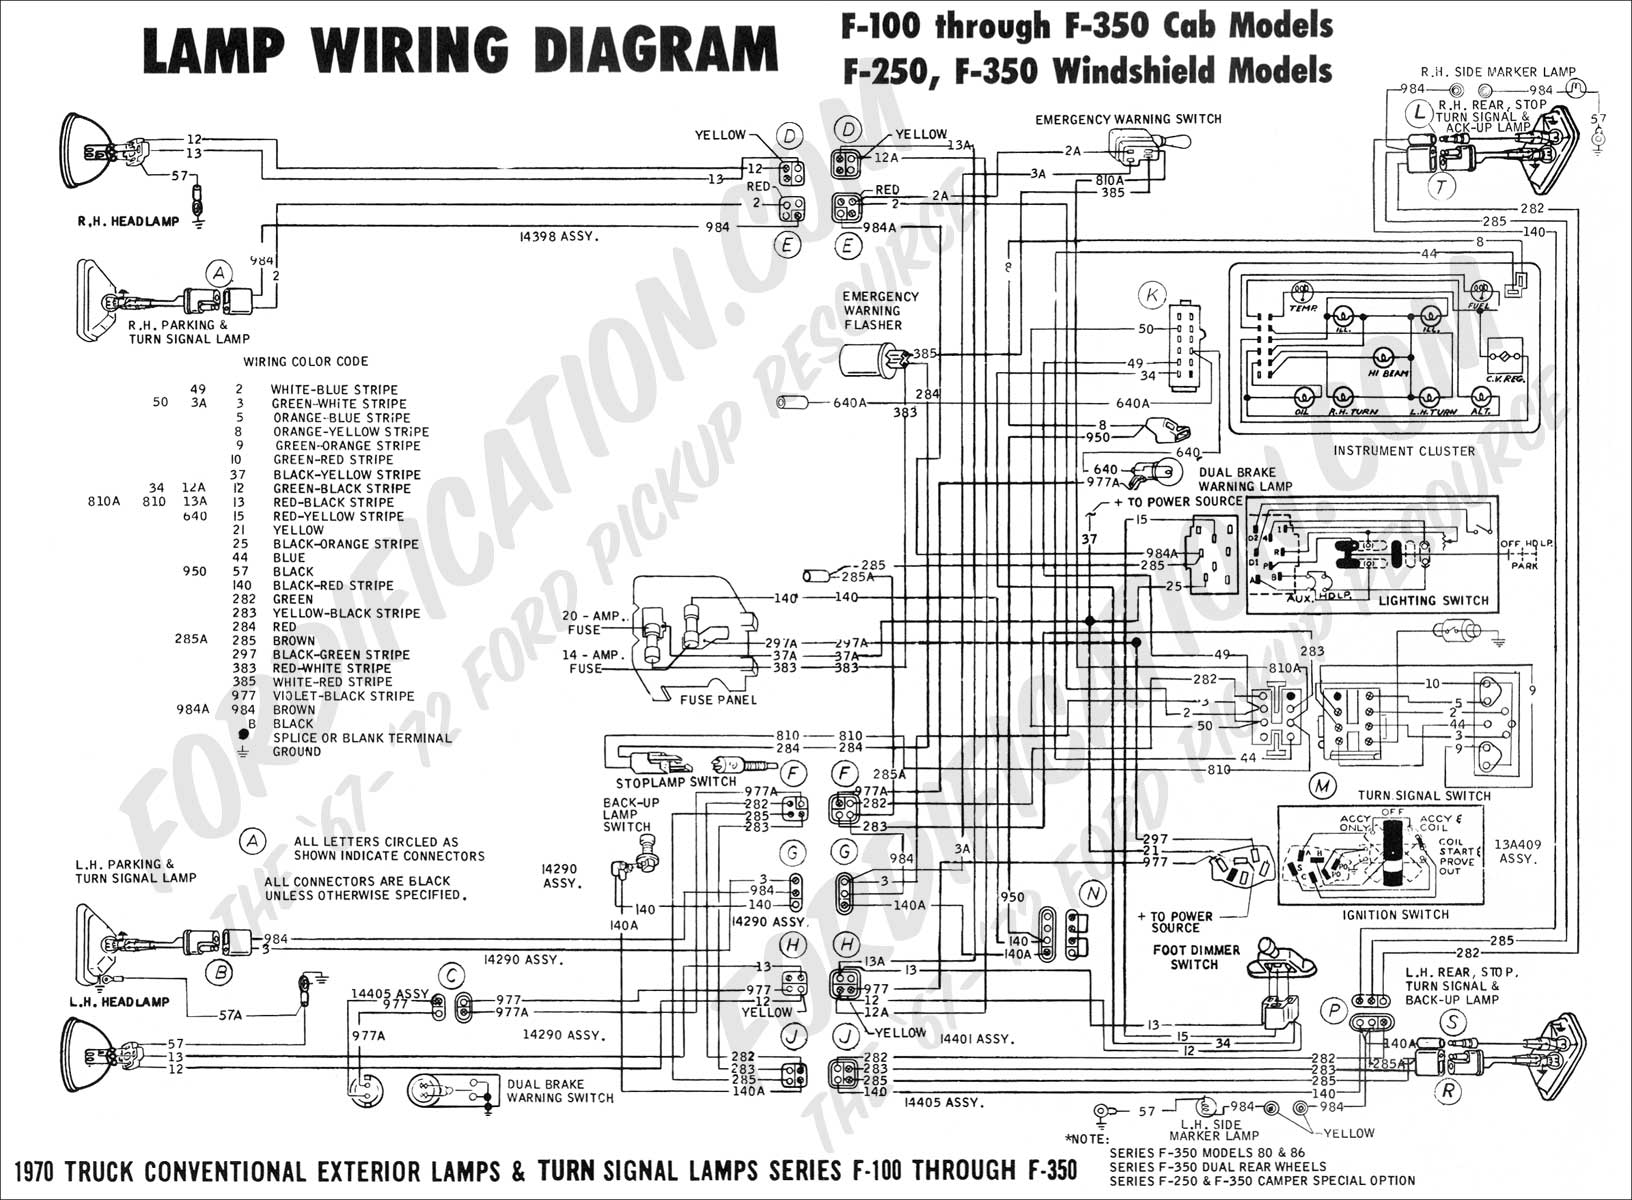 [DVZP_7254]   L9000 Wiring Schematic Head Light - 06 Ford Super Duty Fuse Diagram for Wiring  Diagram Schematics | Ford L9000 Wiring Diagram Brakelights |  | Wiring Diagram Schematics